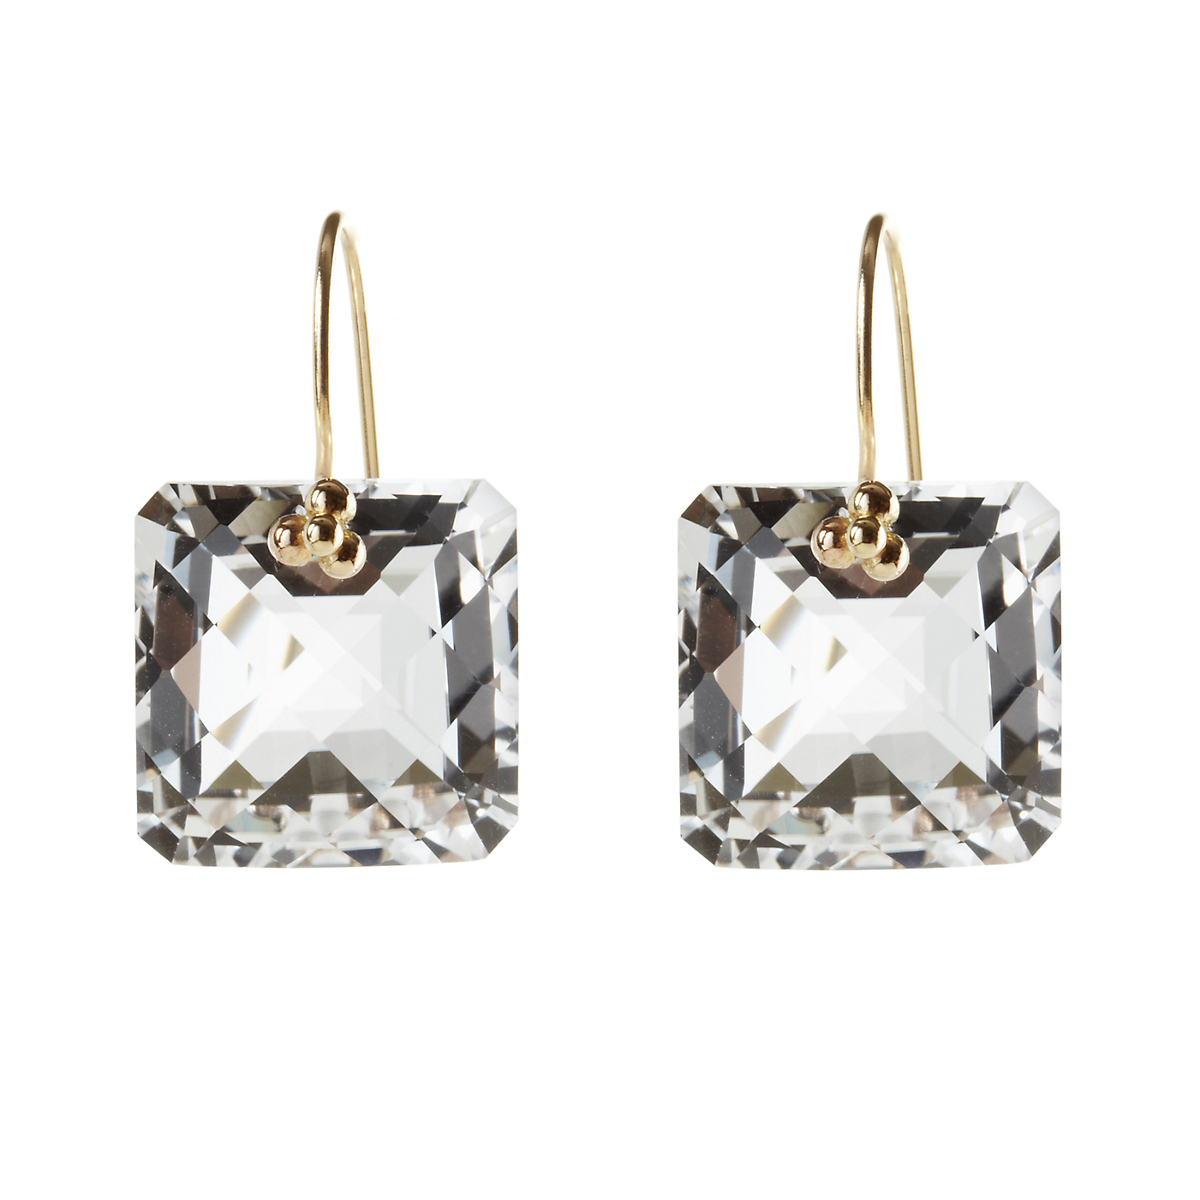 Nikki Baker White Quartz Drop Earrings